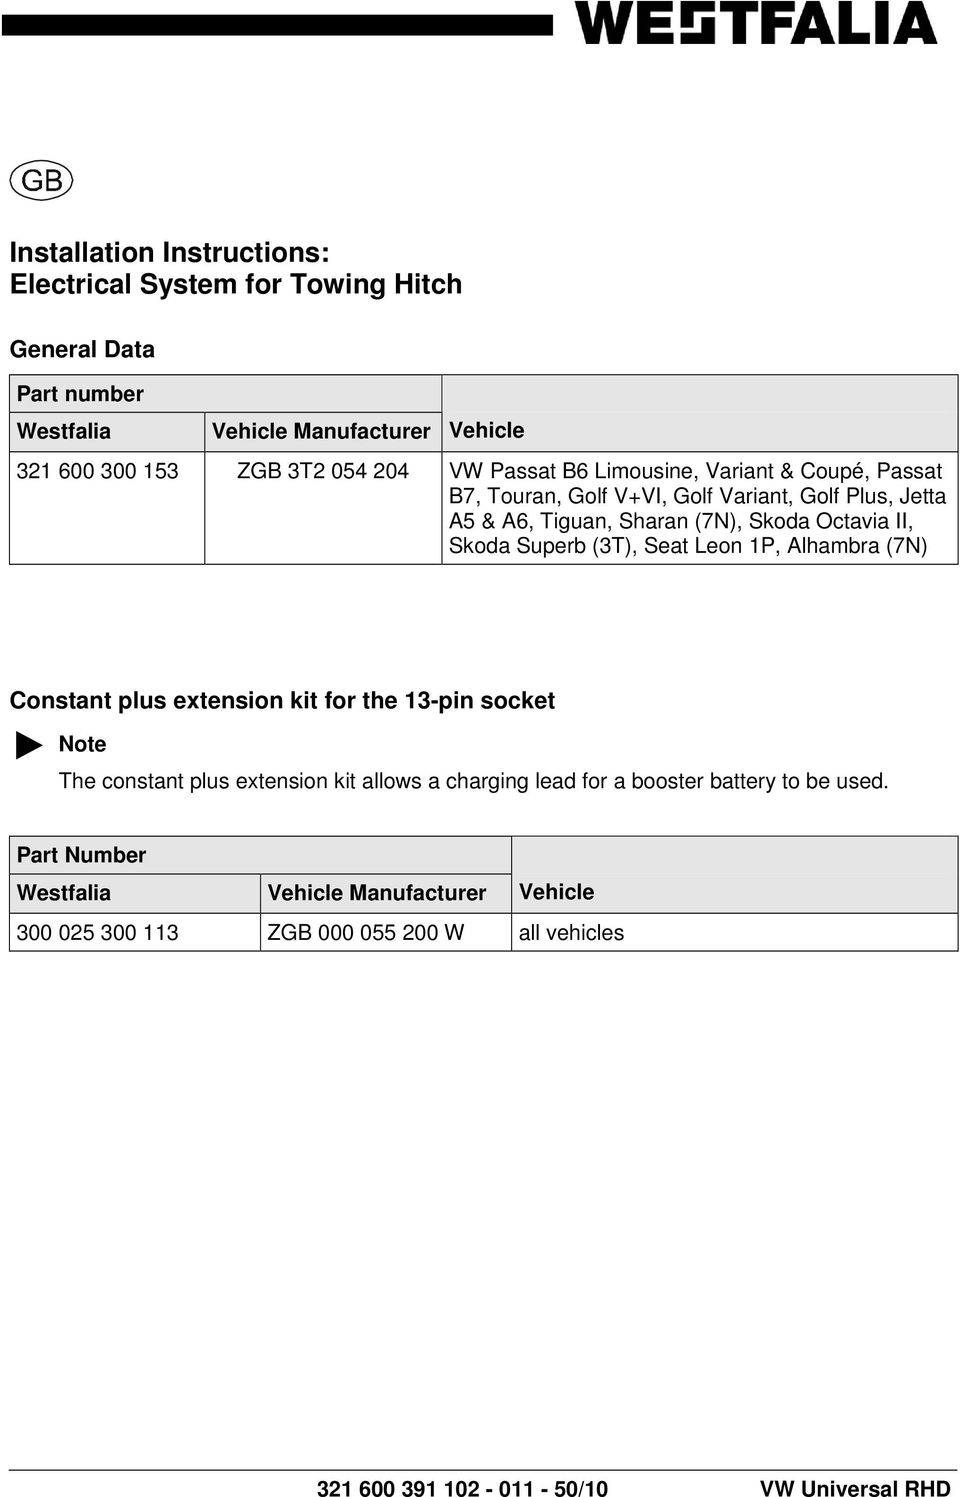 Installation Instructions Electrical System For Towing Hitch Pdf 2012 Vw Beetle Wiring Harness Trailer 7n Constant Plus Extension Kit The 13 Pin Socket Note